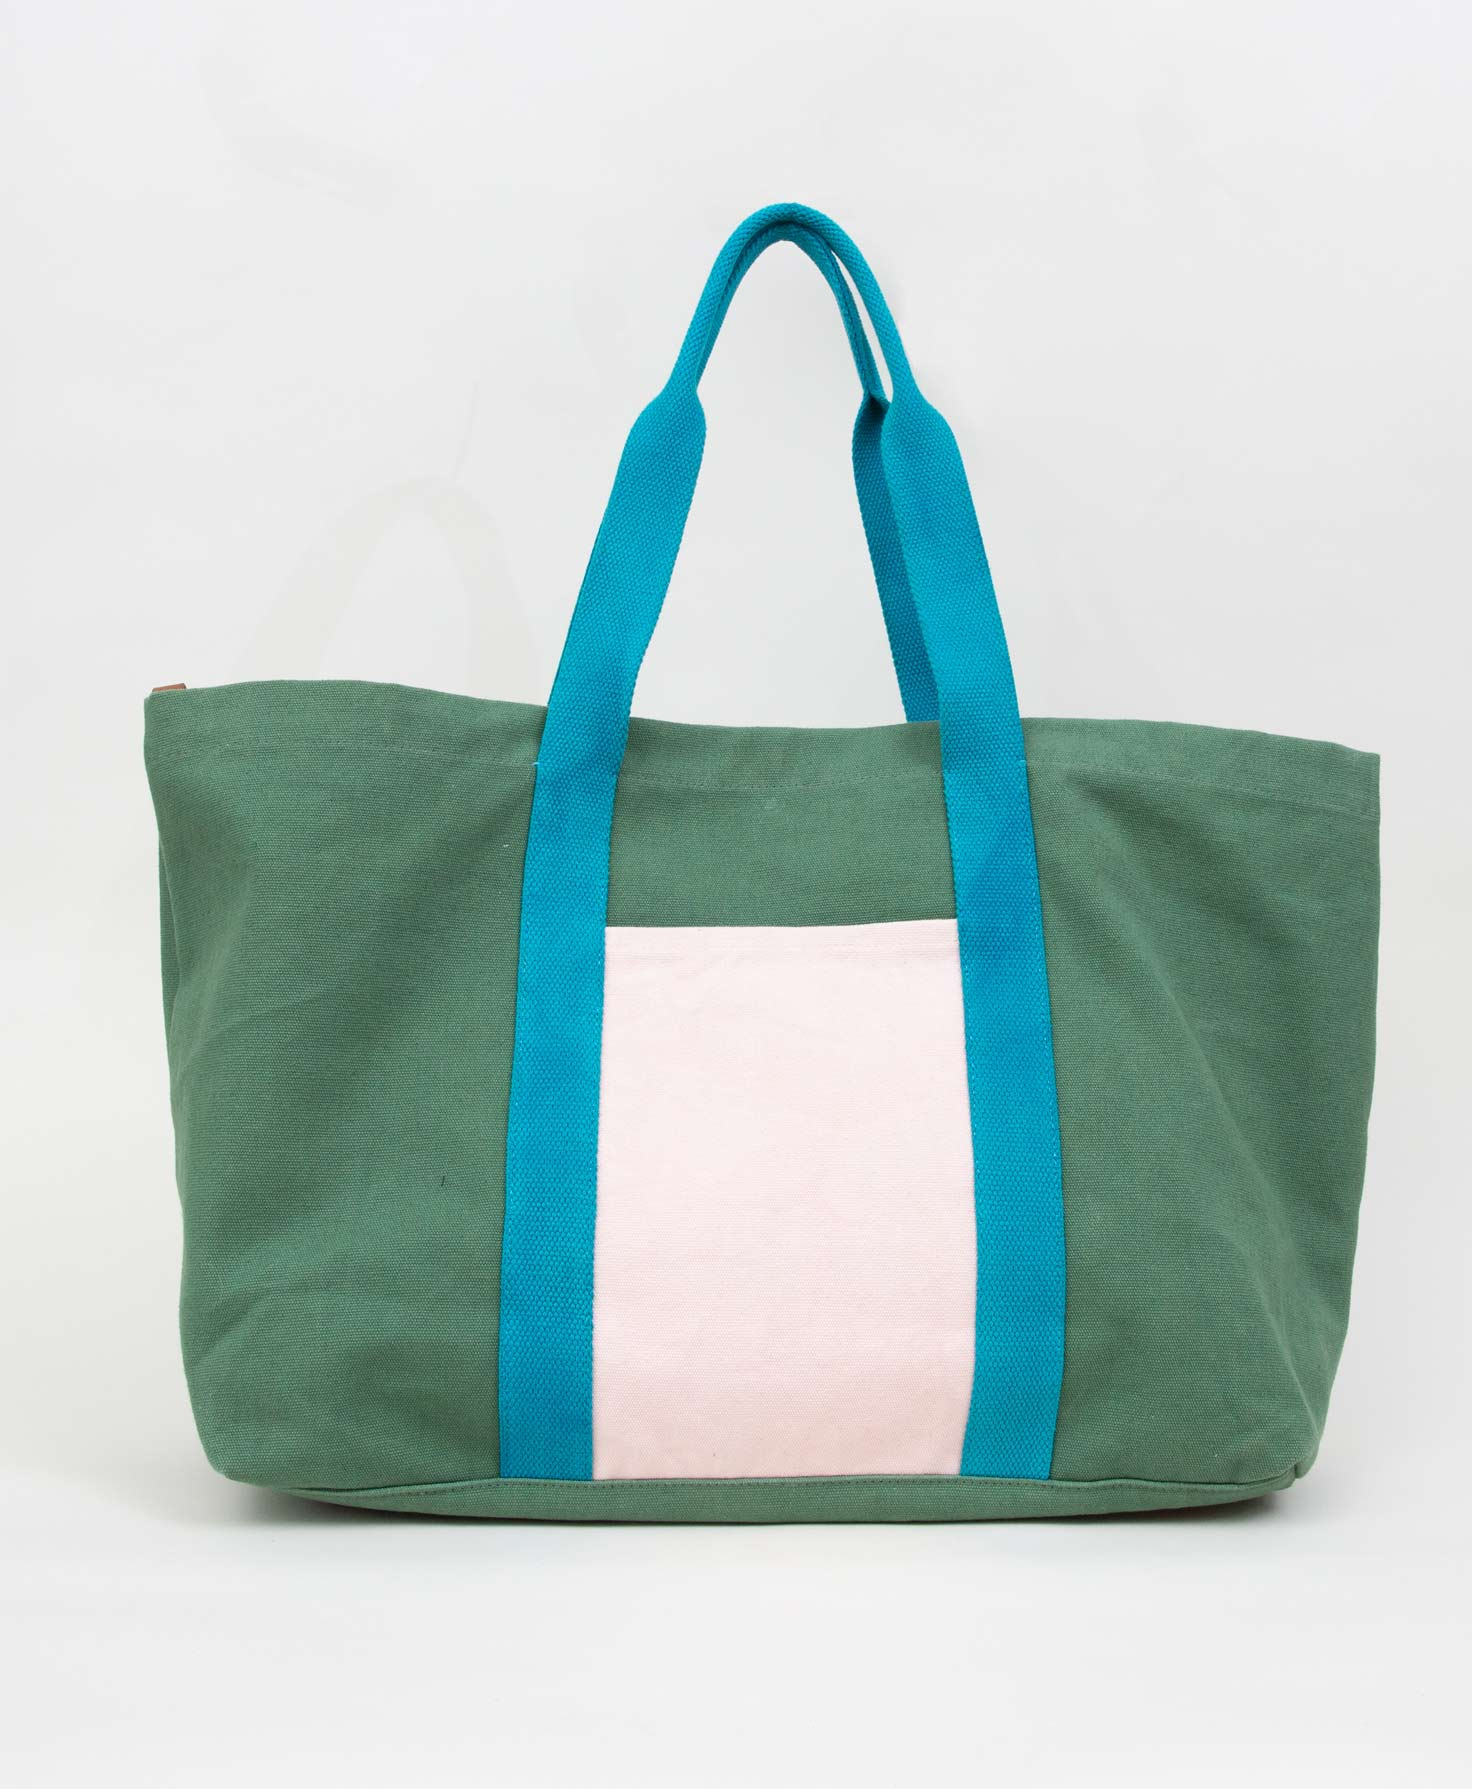 The Canvas Colorblock Carryall sits upright on a white surface. It is a large tote that is rectangular in shape. It is wider than it is high. The bag is made of three different colors of canvas. The main color is forest green. Onto this is stitched a large cream canvas pocket. Stretching from the bottom of the bag all the way to the top are two turquoise canvas strips that become the bag's two handles.